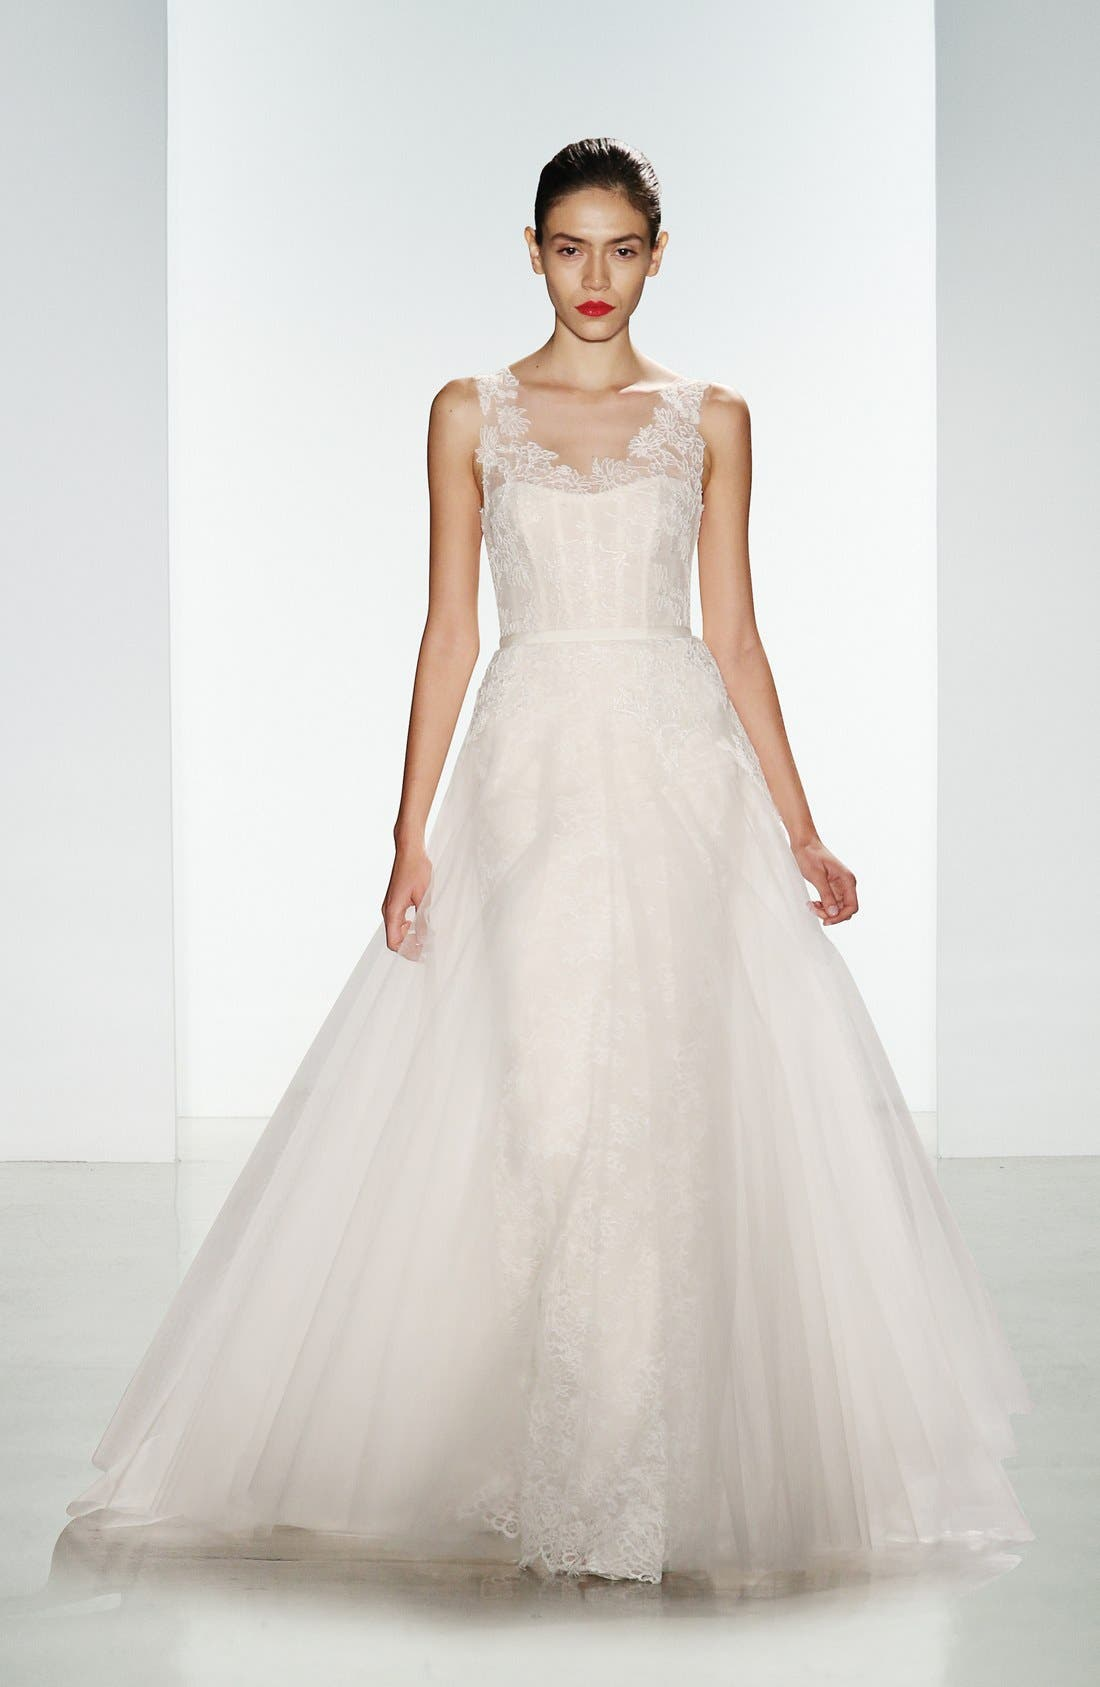 Rae Corded Lace Gown with Tulle Overskirt,                             Main thumbnail 1, color,                             901